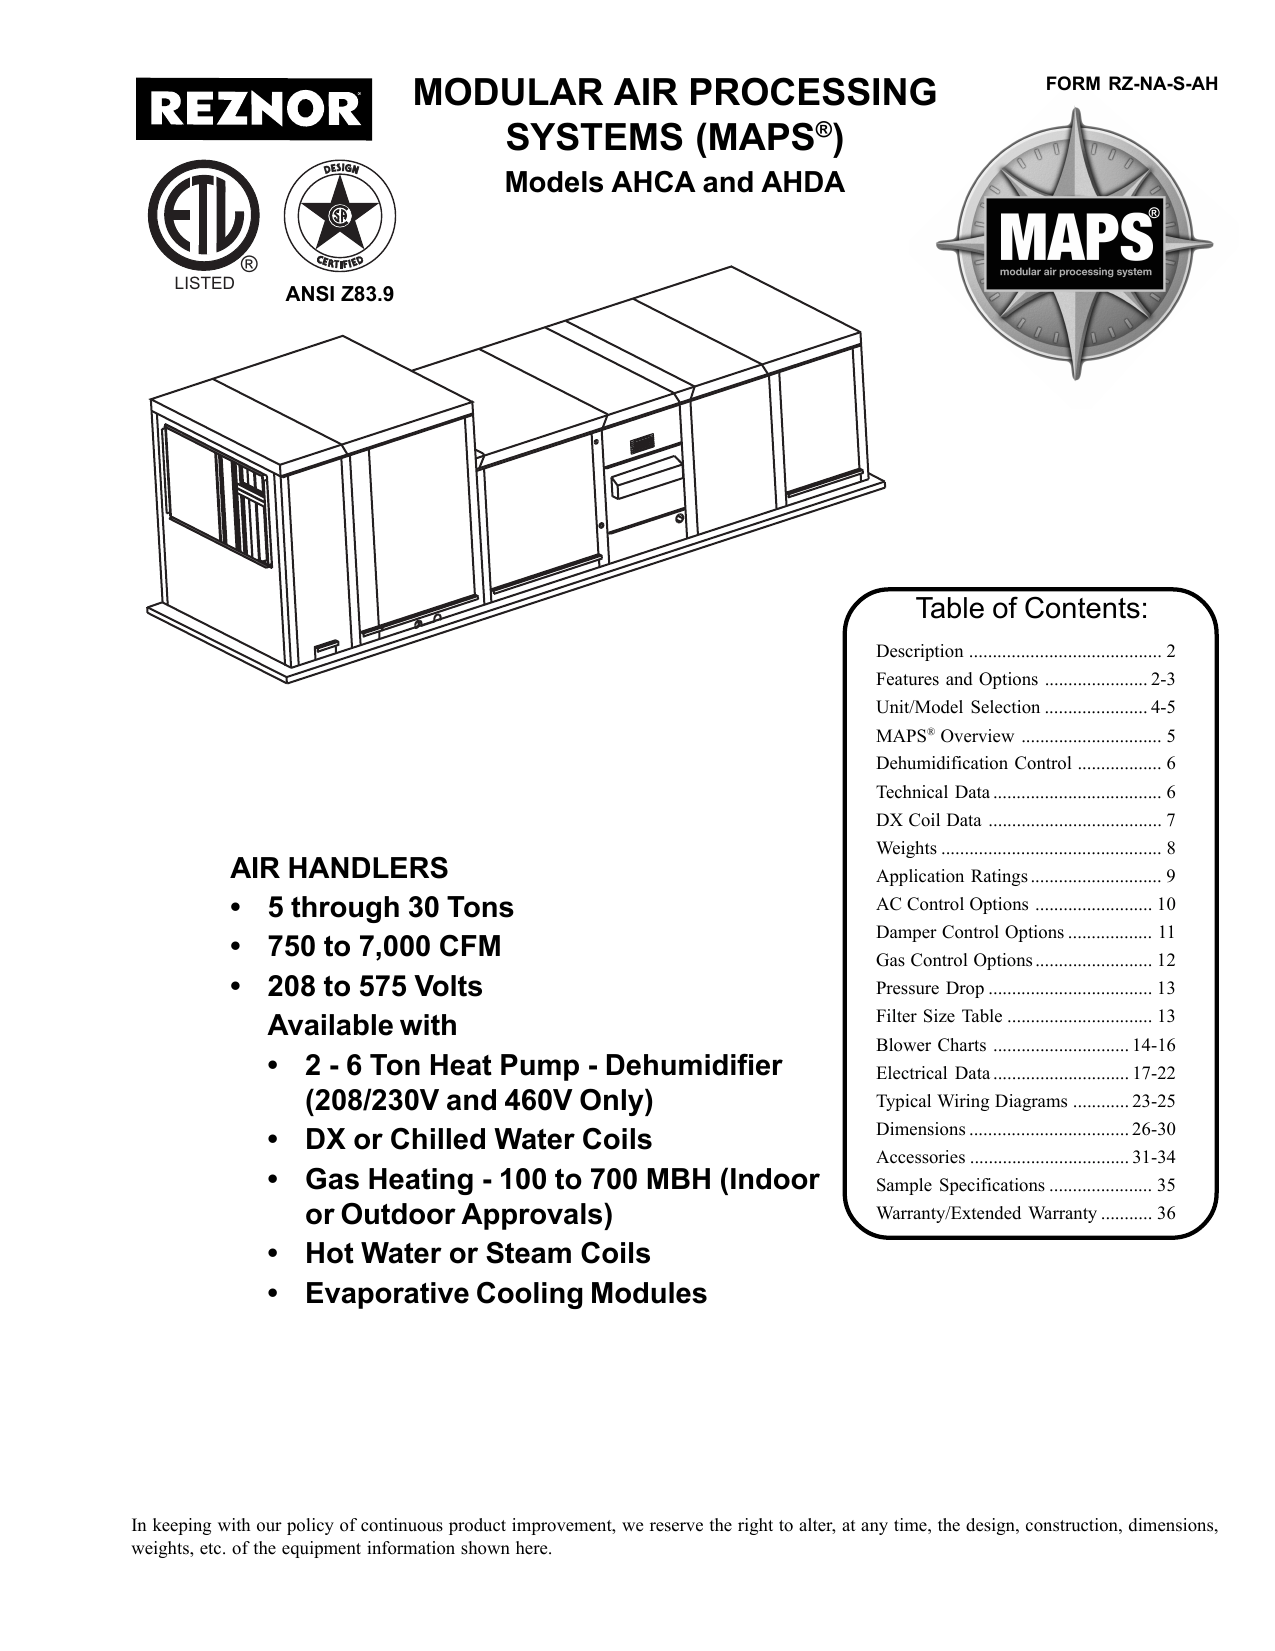 hight resolution of  modular air processing systems maps manualzz com on hot water heater